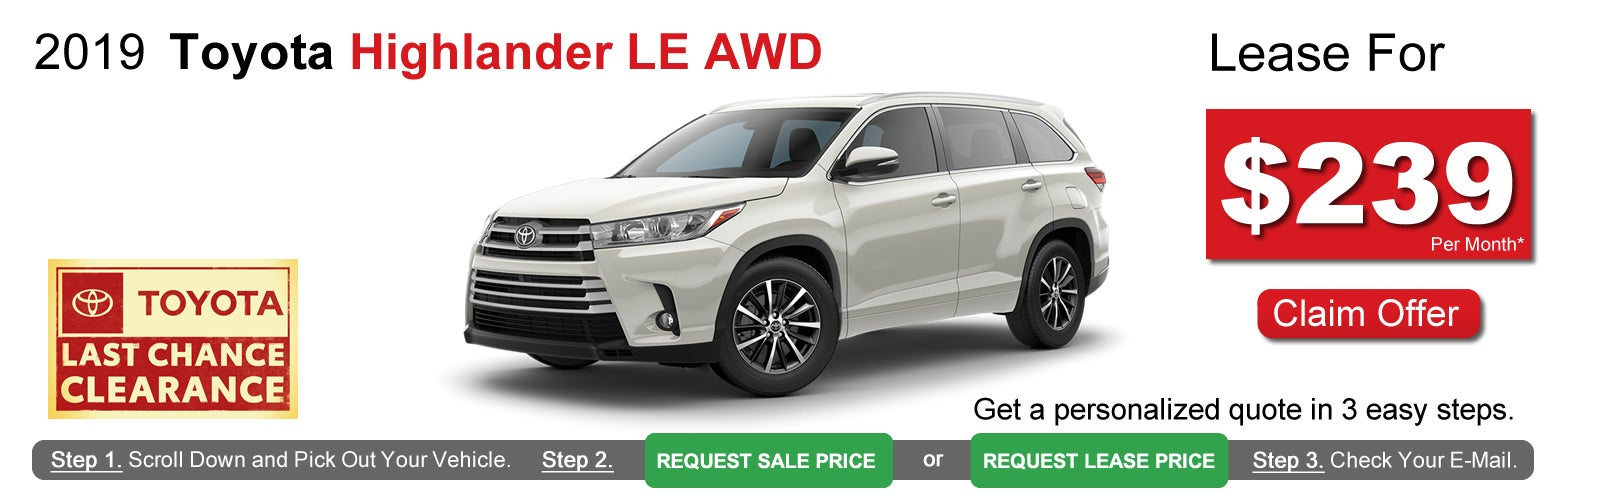 Toyota Highlander Lease >> Toyota Highlander Lease Deals Near Boston Ma Lease Offers